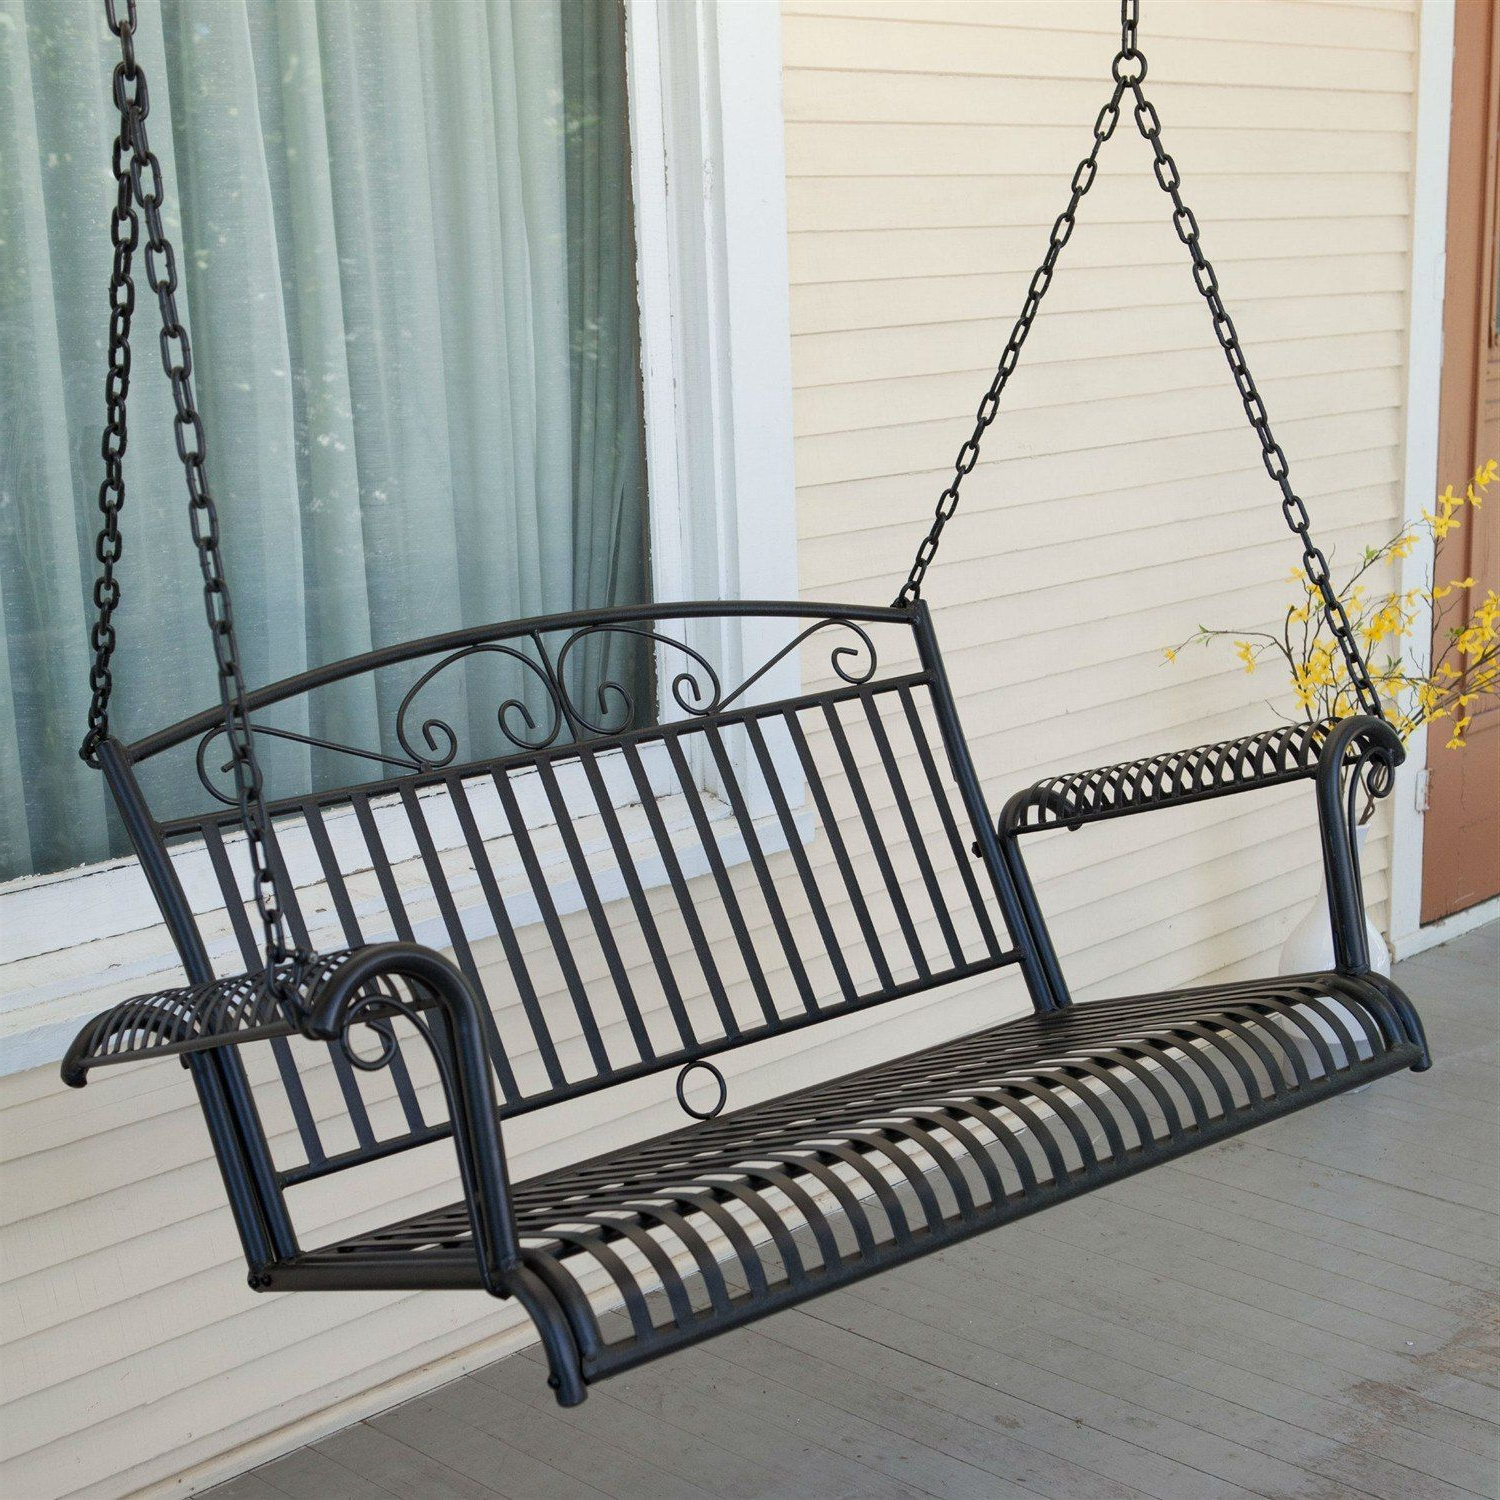 Well Liked 2 Person Hammered Bronze Iron Outdoor Swings In Wrought Iron Outdoor Patio 4 Ft Porch Swing In Black (View 3 of 30)